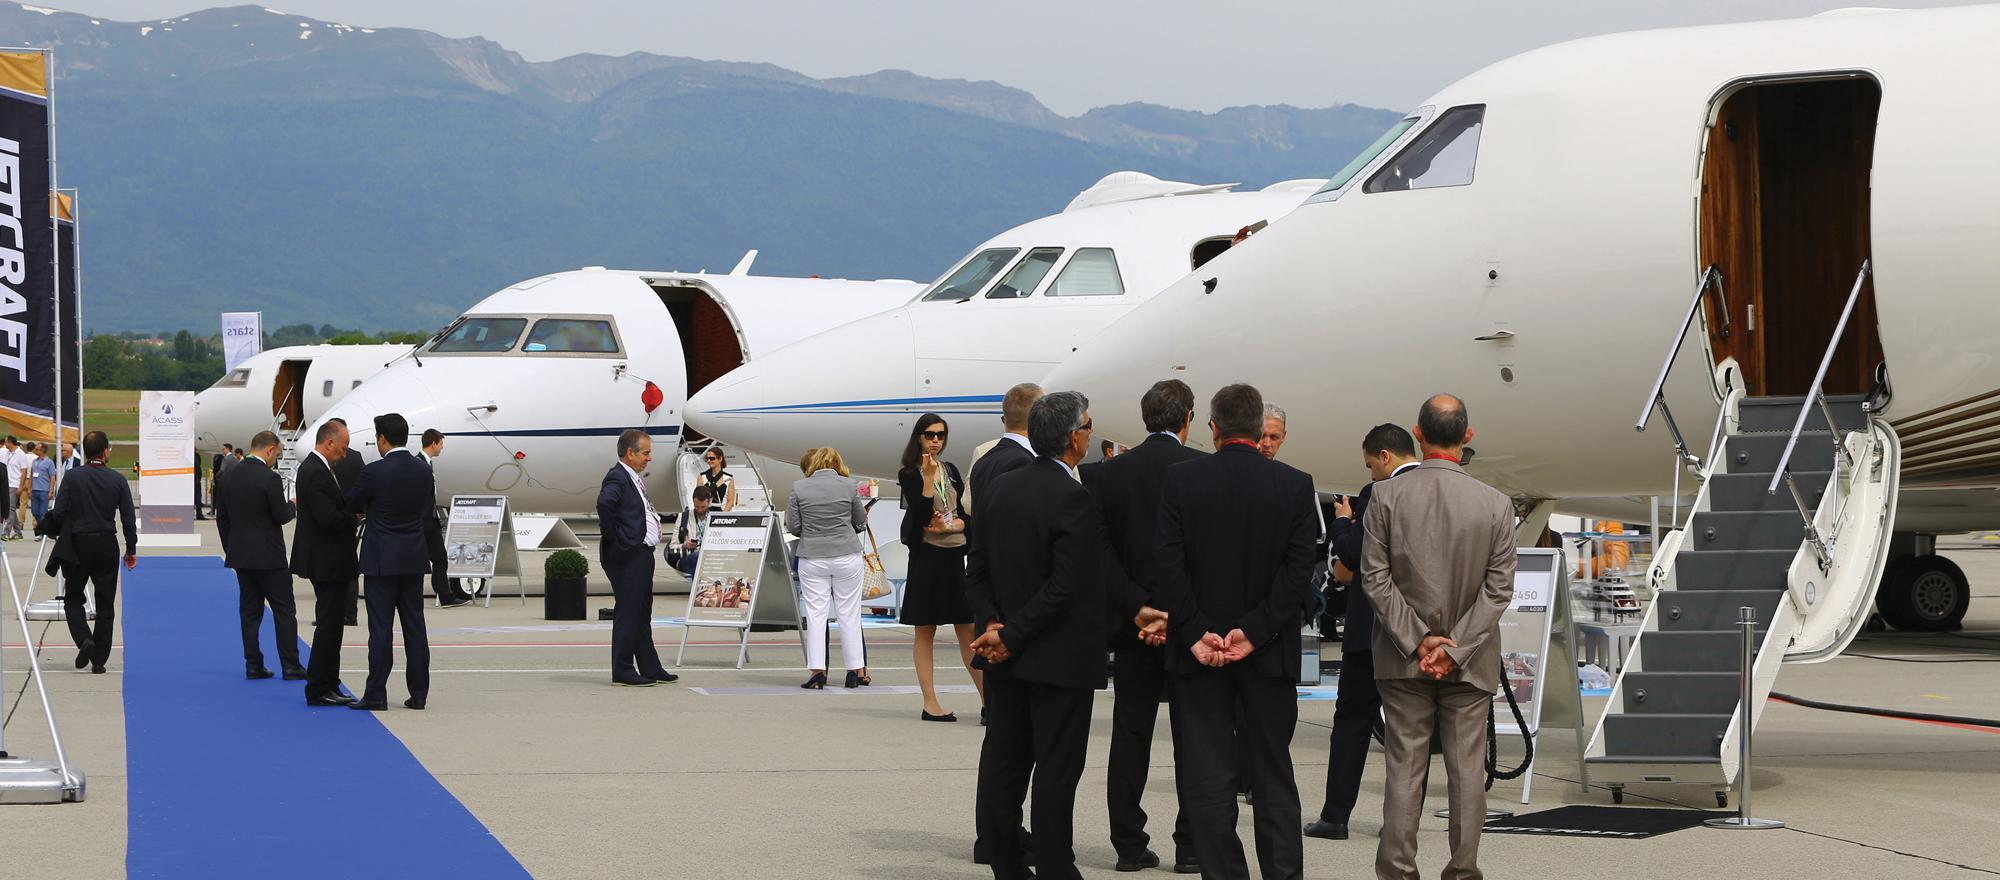 Business jet static display. Photo: David McIntosh